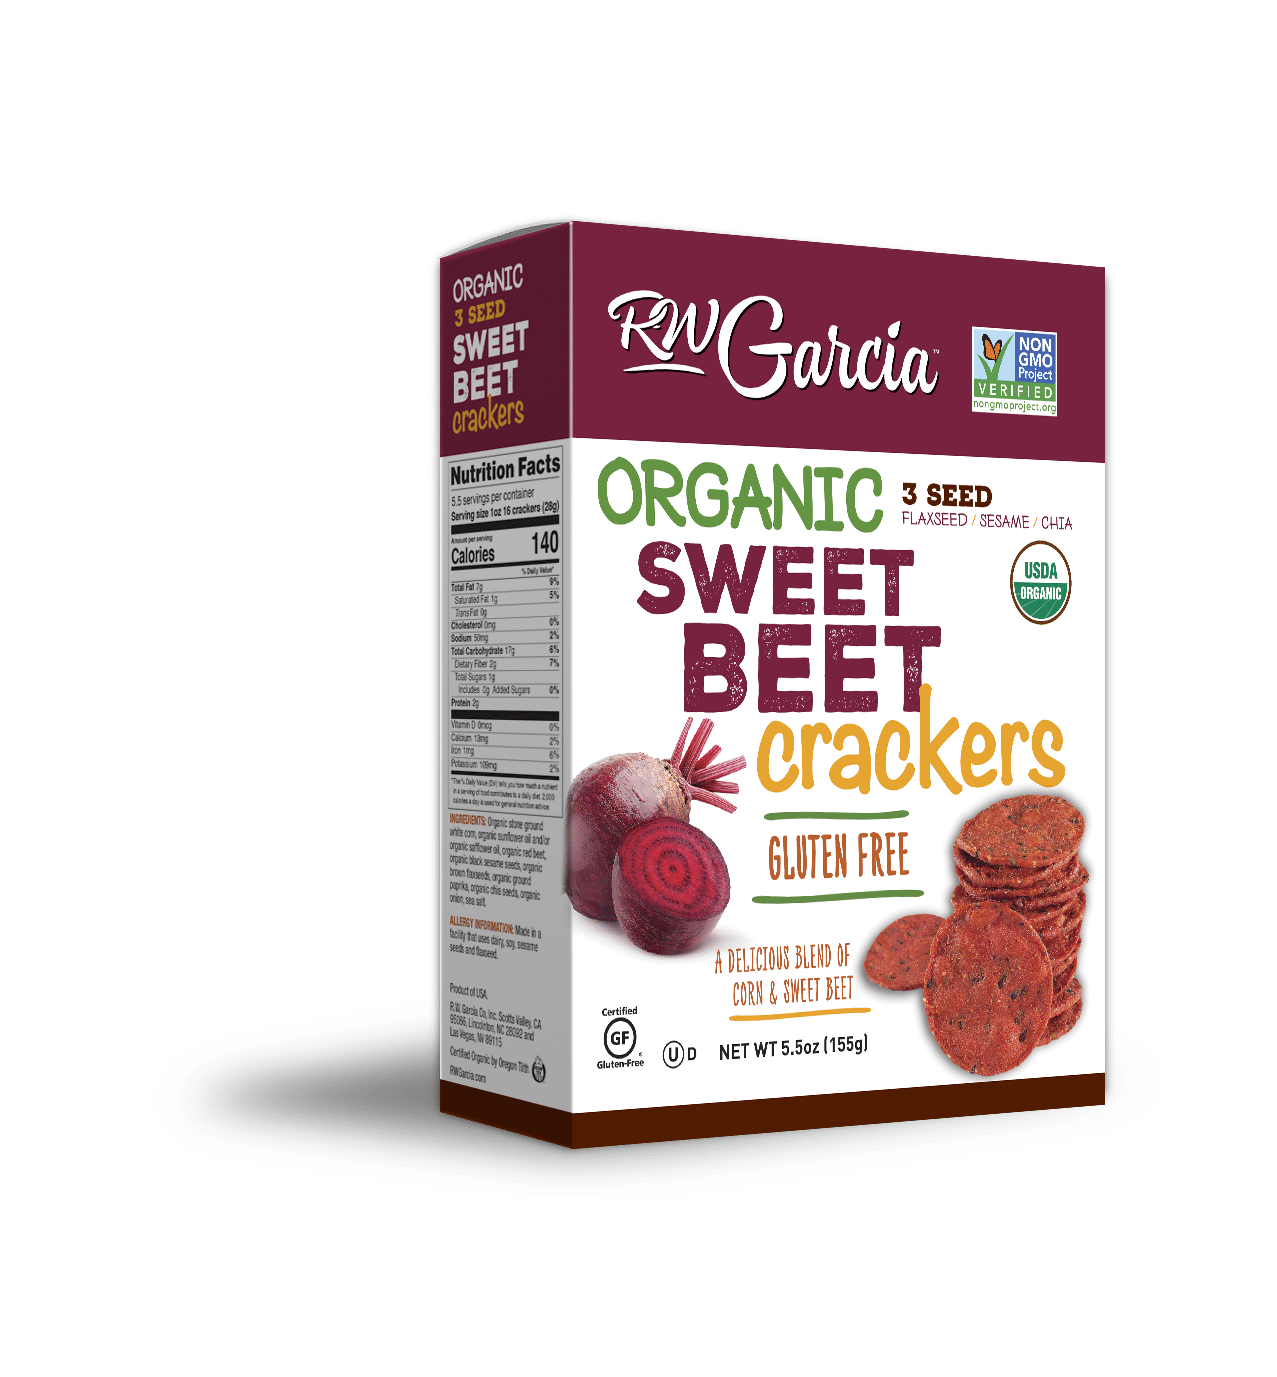 RWG_SweetBeet_Cracker_Org_5.5oz_3D_072719